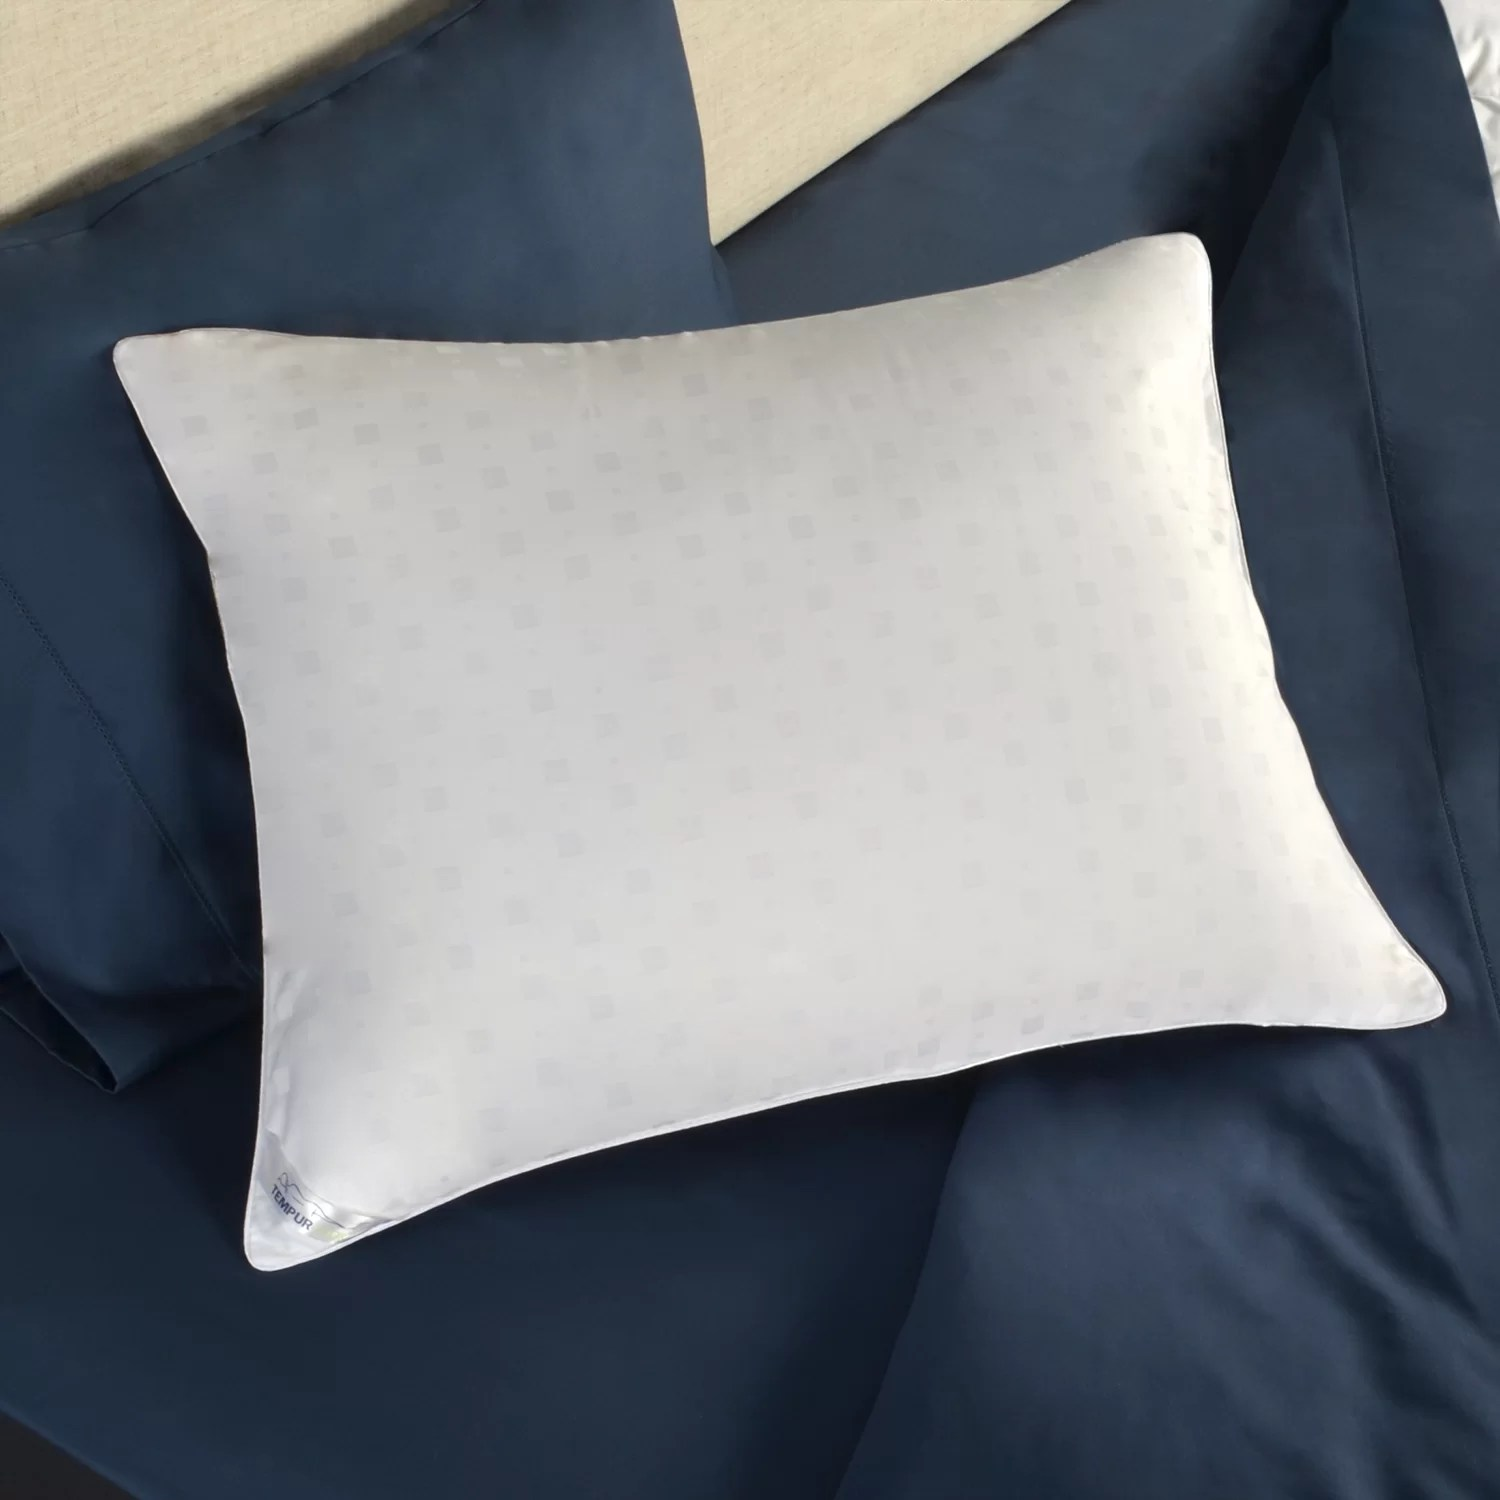 Standard Bed Pillows Tempur Traditional Foam Standard Bed Pillow